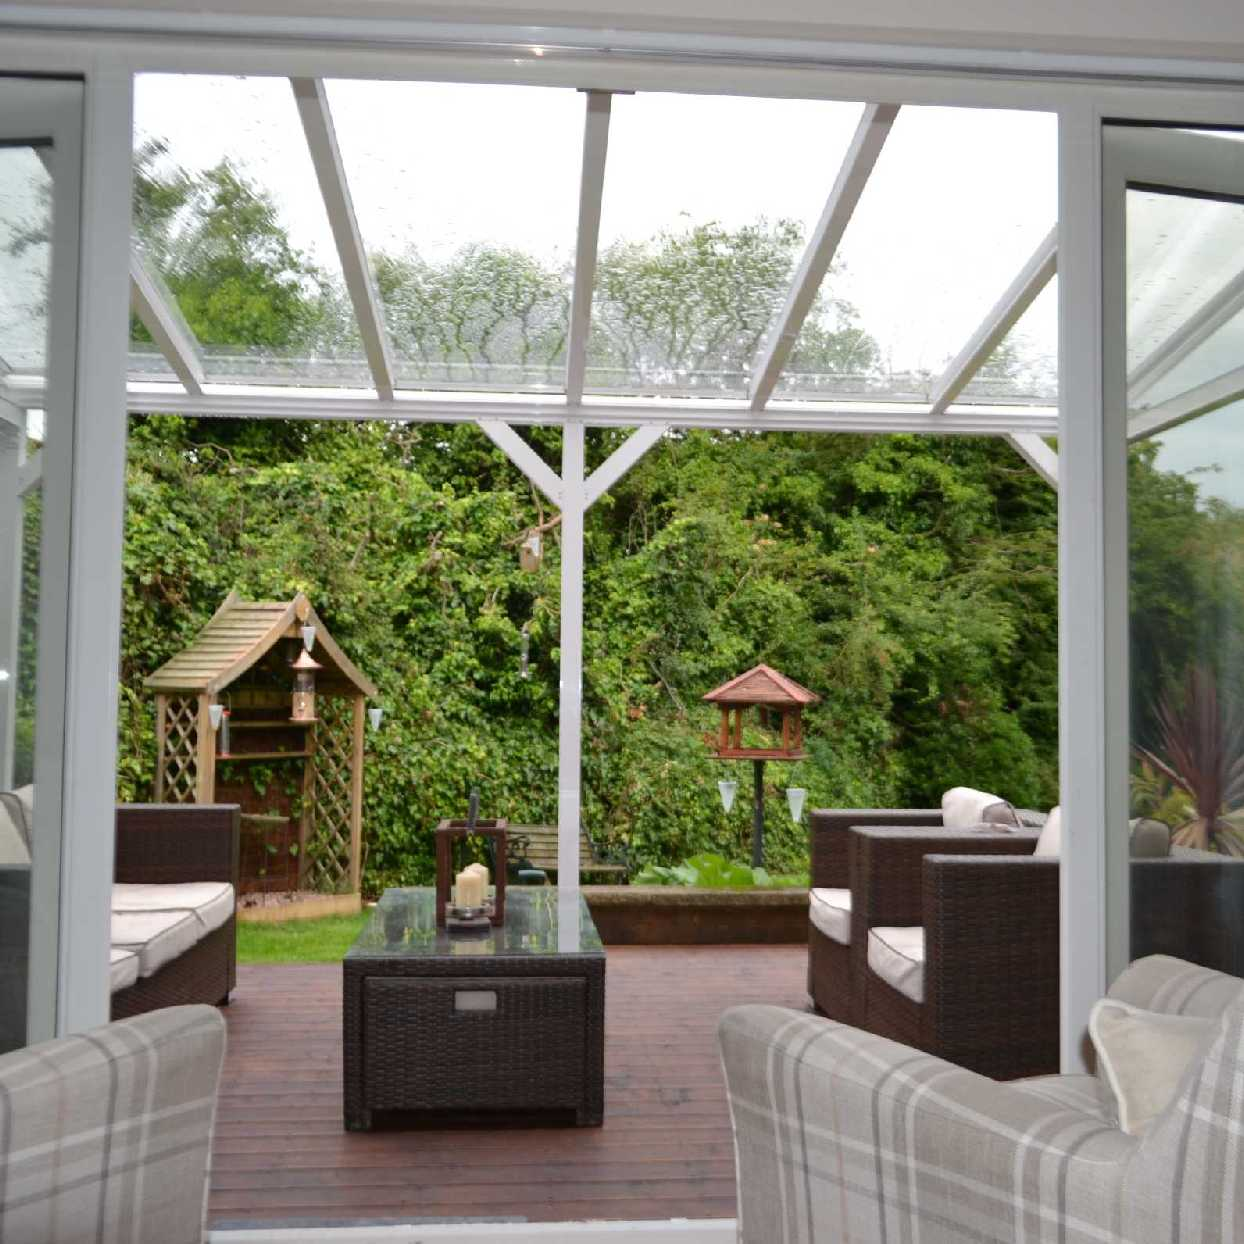 Great selection of Omega Smart Lean-To Canopy UNGLAZED for 6mm Glazing - 5.6m (W) x 3.5m (P), (3) Supporting Posts